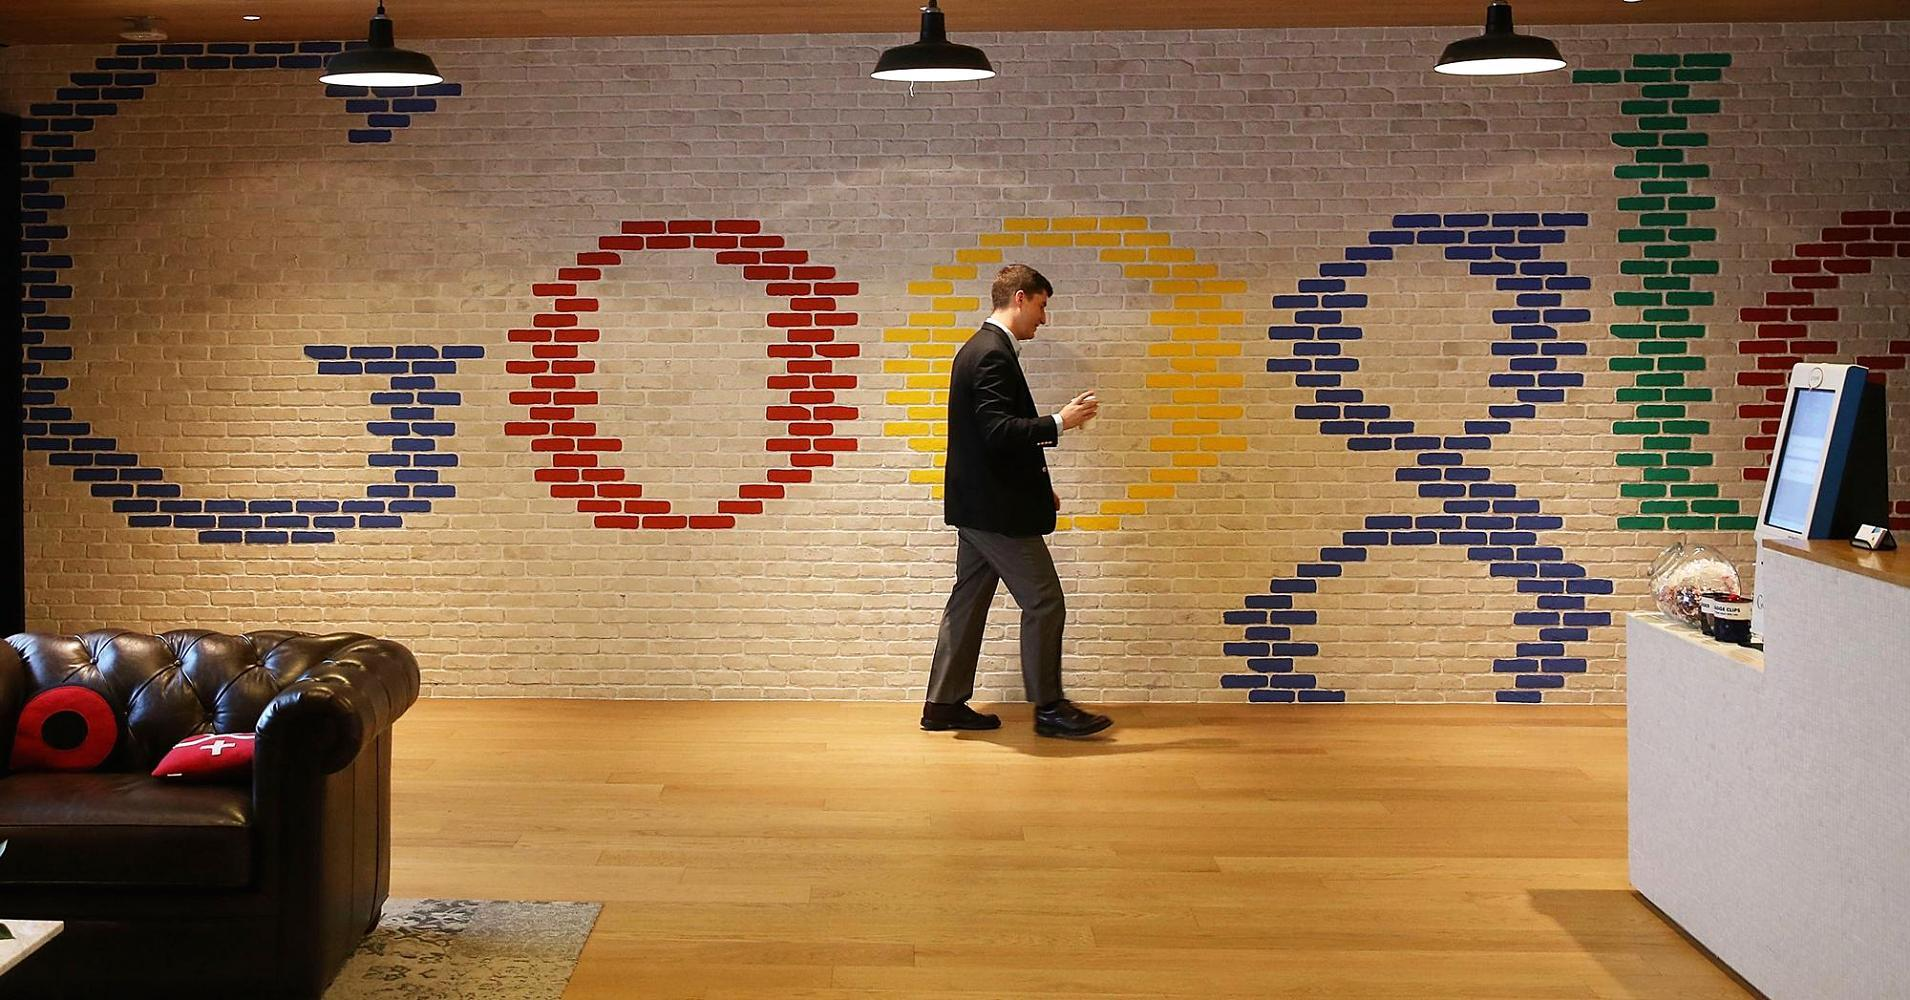 Google is still the place everyone wants to work